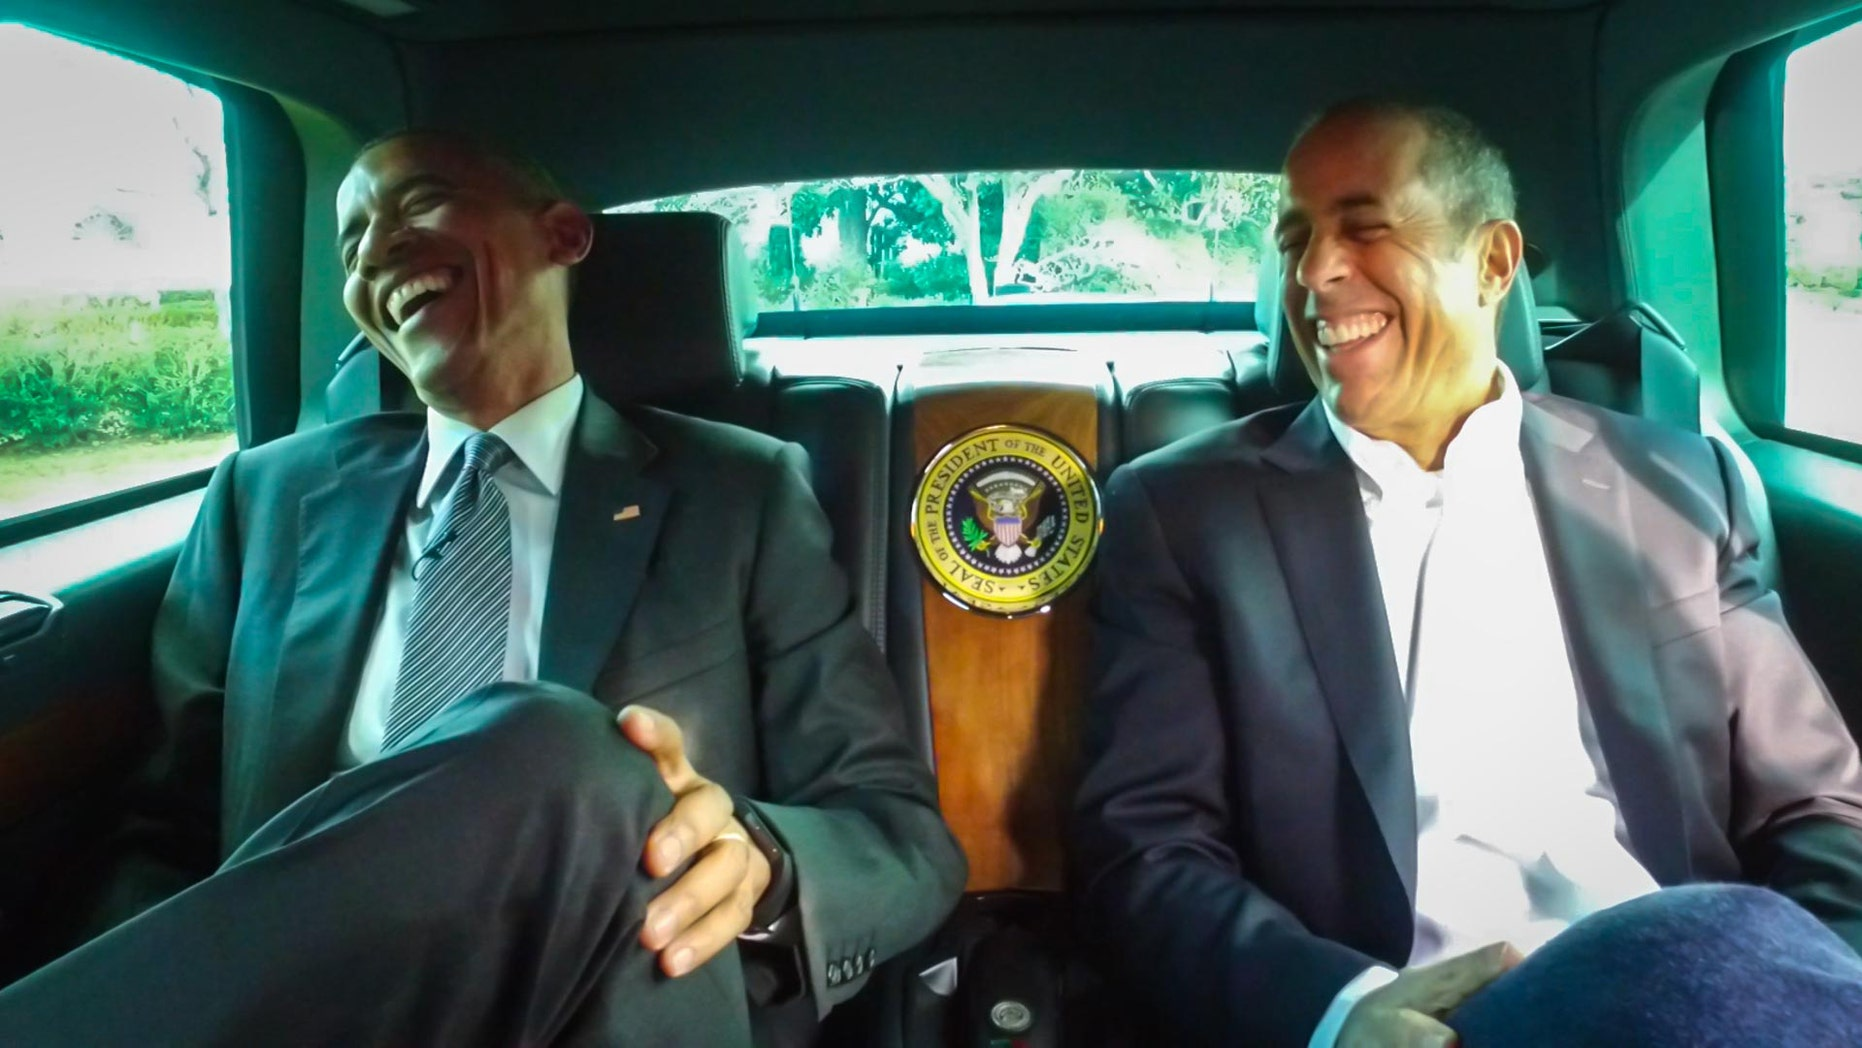 This framegrab image provided by Crackle and comediansincarsgettingcoffee.com, shows President Barack Obama with Jerry Seinfeld in a scene from  a Comedians in Cars Getting Coffee. The president and Seinfeld compare cars and trade one-liners in a 19-minute episode of Comedians In Cars Getting Coffee. The episode began airing Wednesday night. (Crackle and comediansincarsgettingcoffee.com via AP)